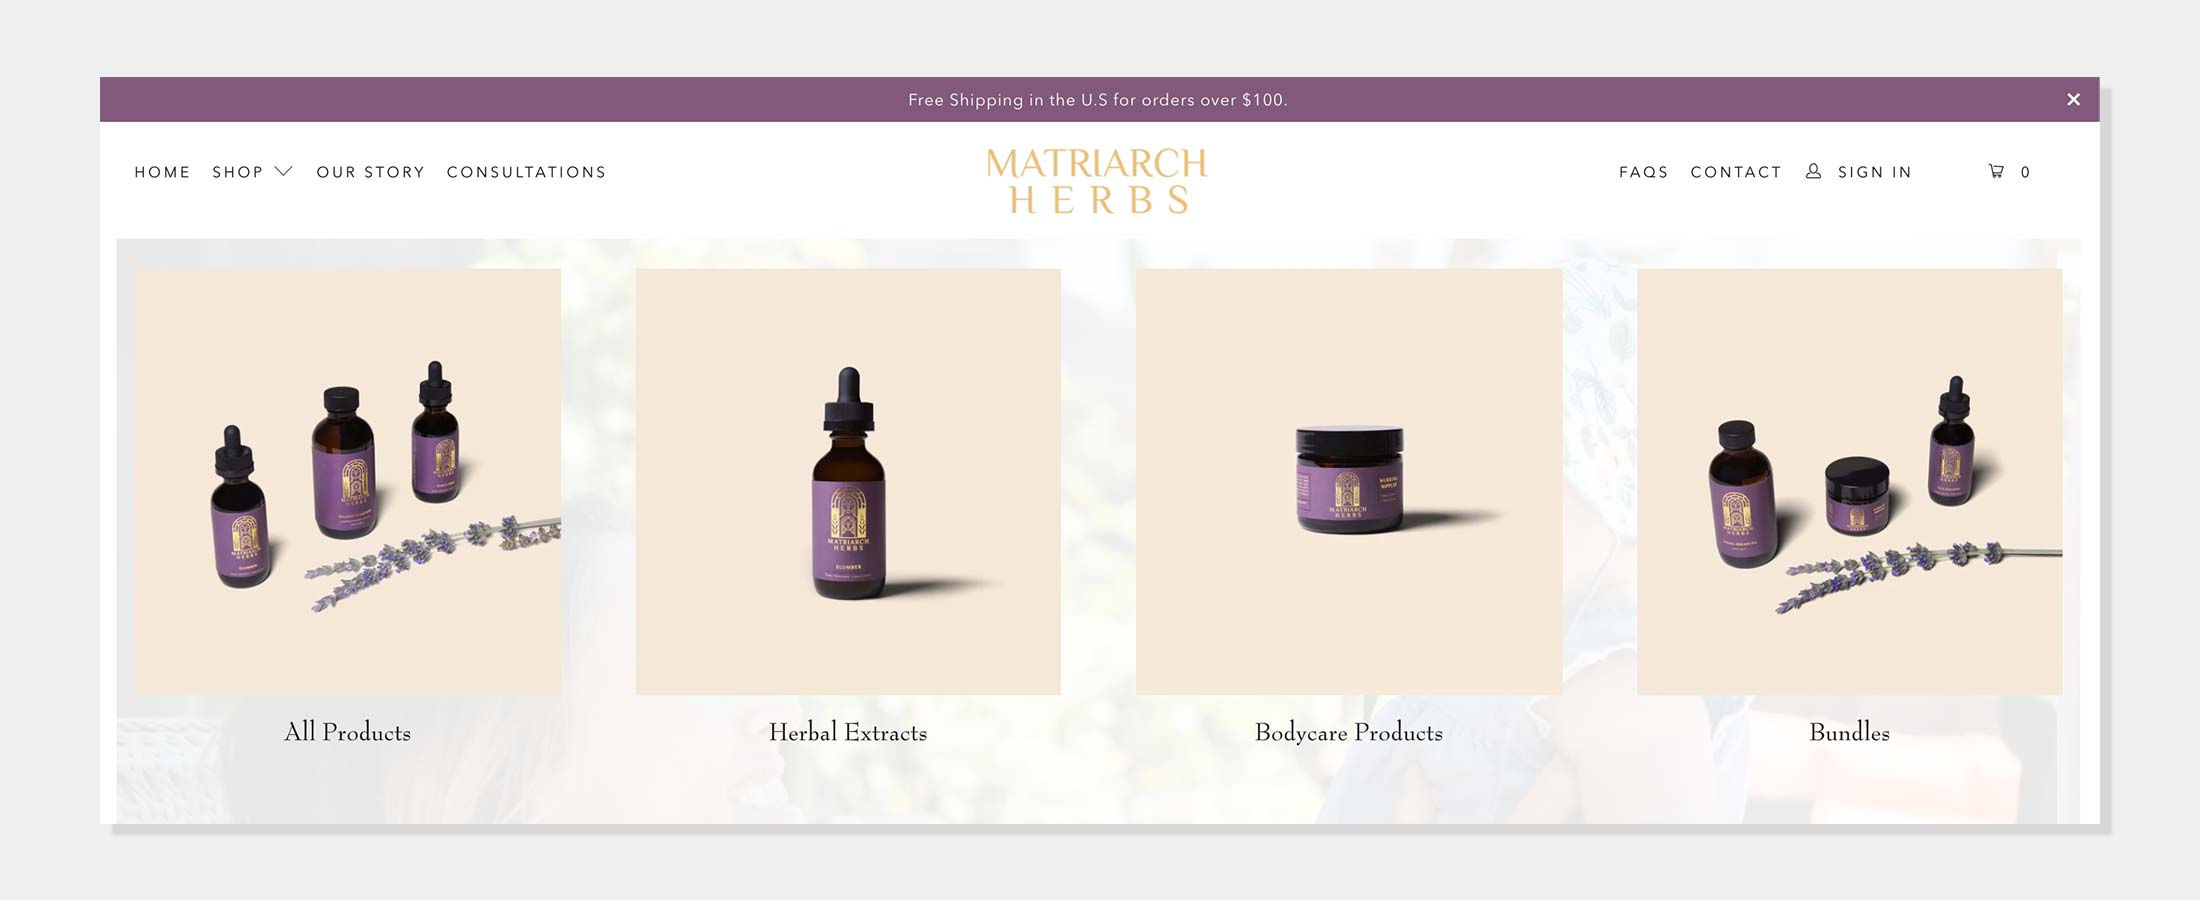 Matriarch Herbs - Herbal Extracts and Bodycare